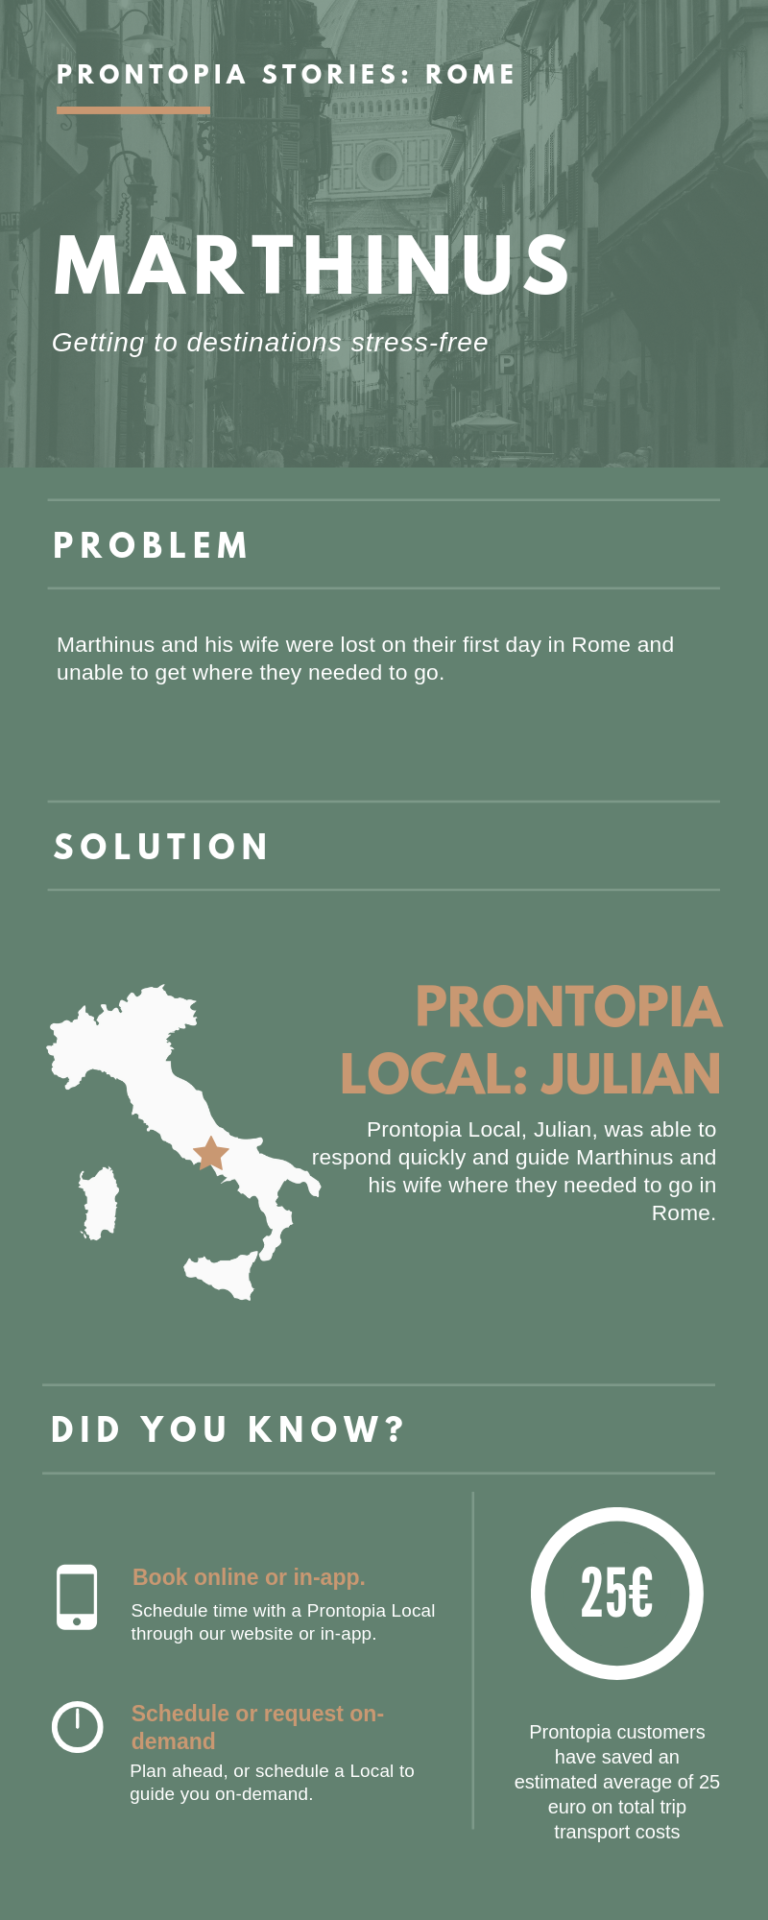 How to Use Prontopia in Rome? Marthinus Story 0